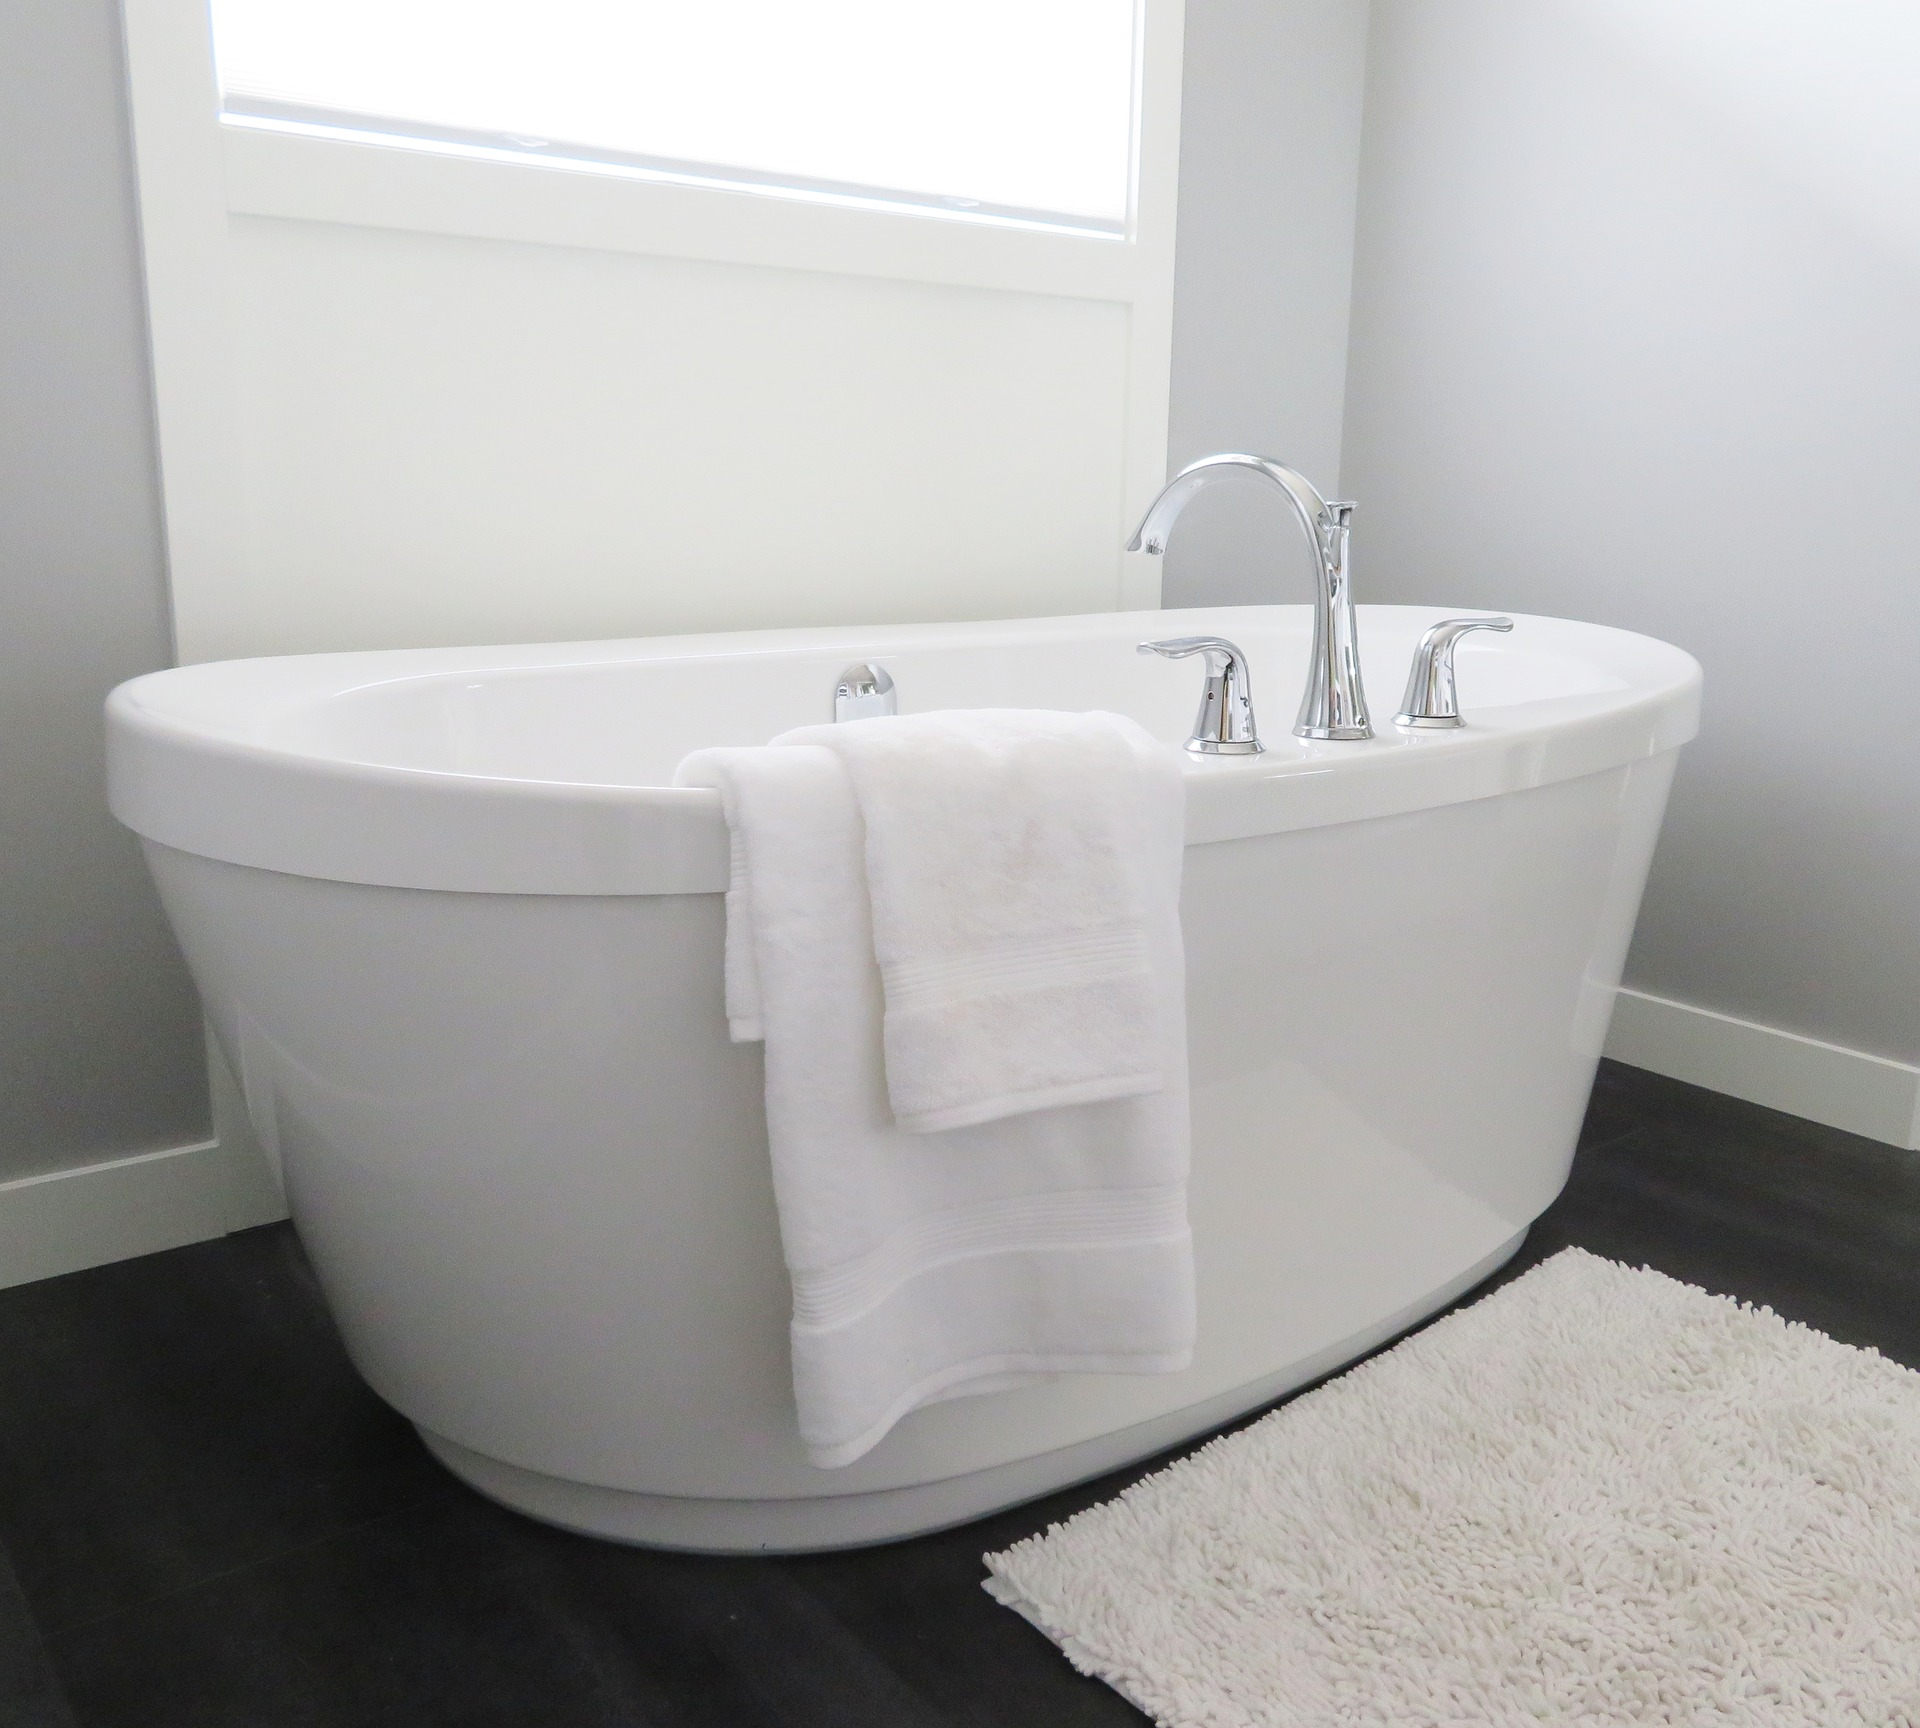 Stand alone tubs are very popular right now. Before you install one, consider your current and future situation. These are very deep tubs. Do you have any mobility issues (or could you develop any soon) that could prevent you from getting into the tub easily?